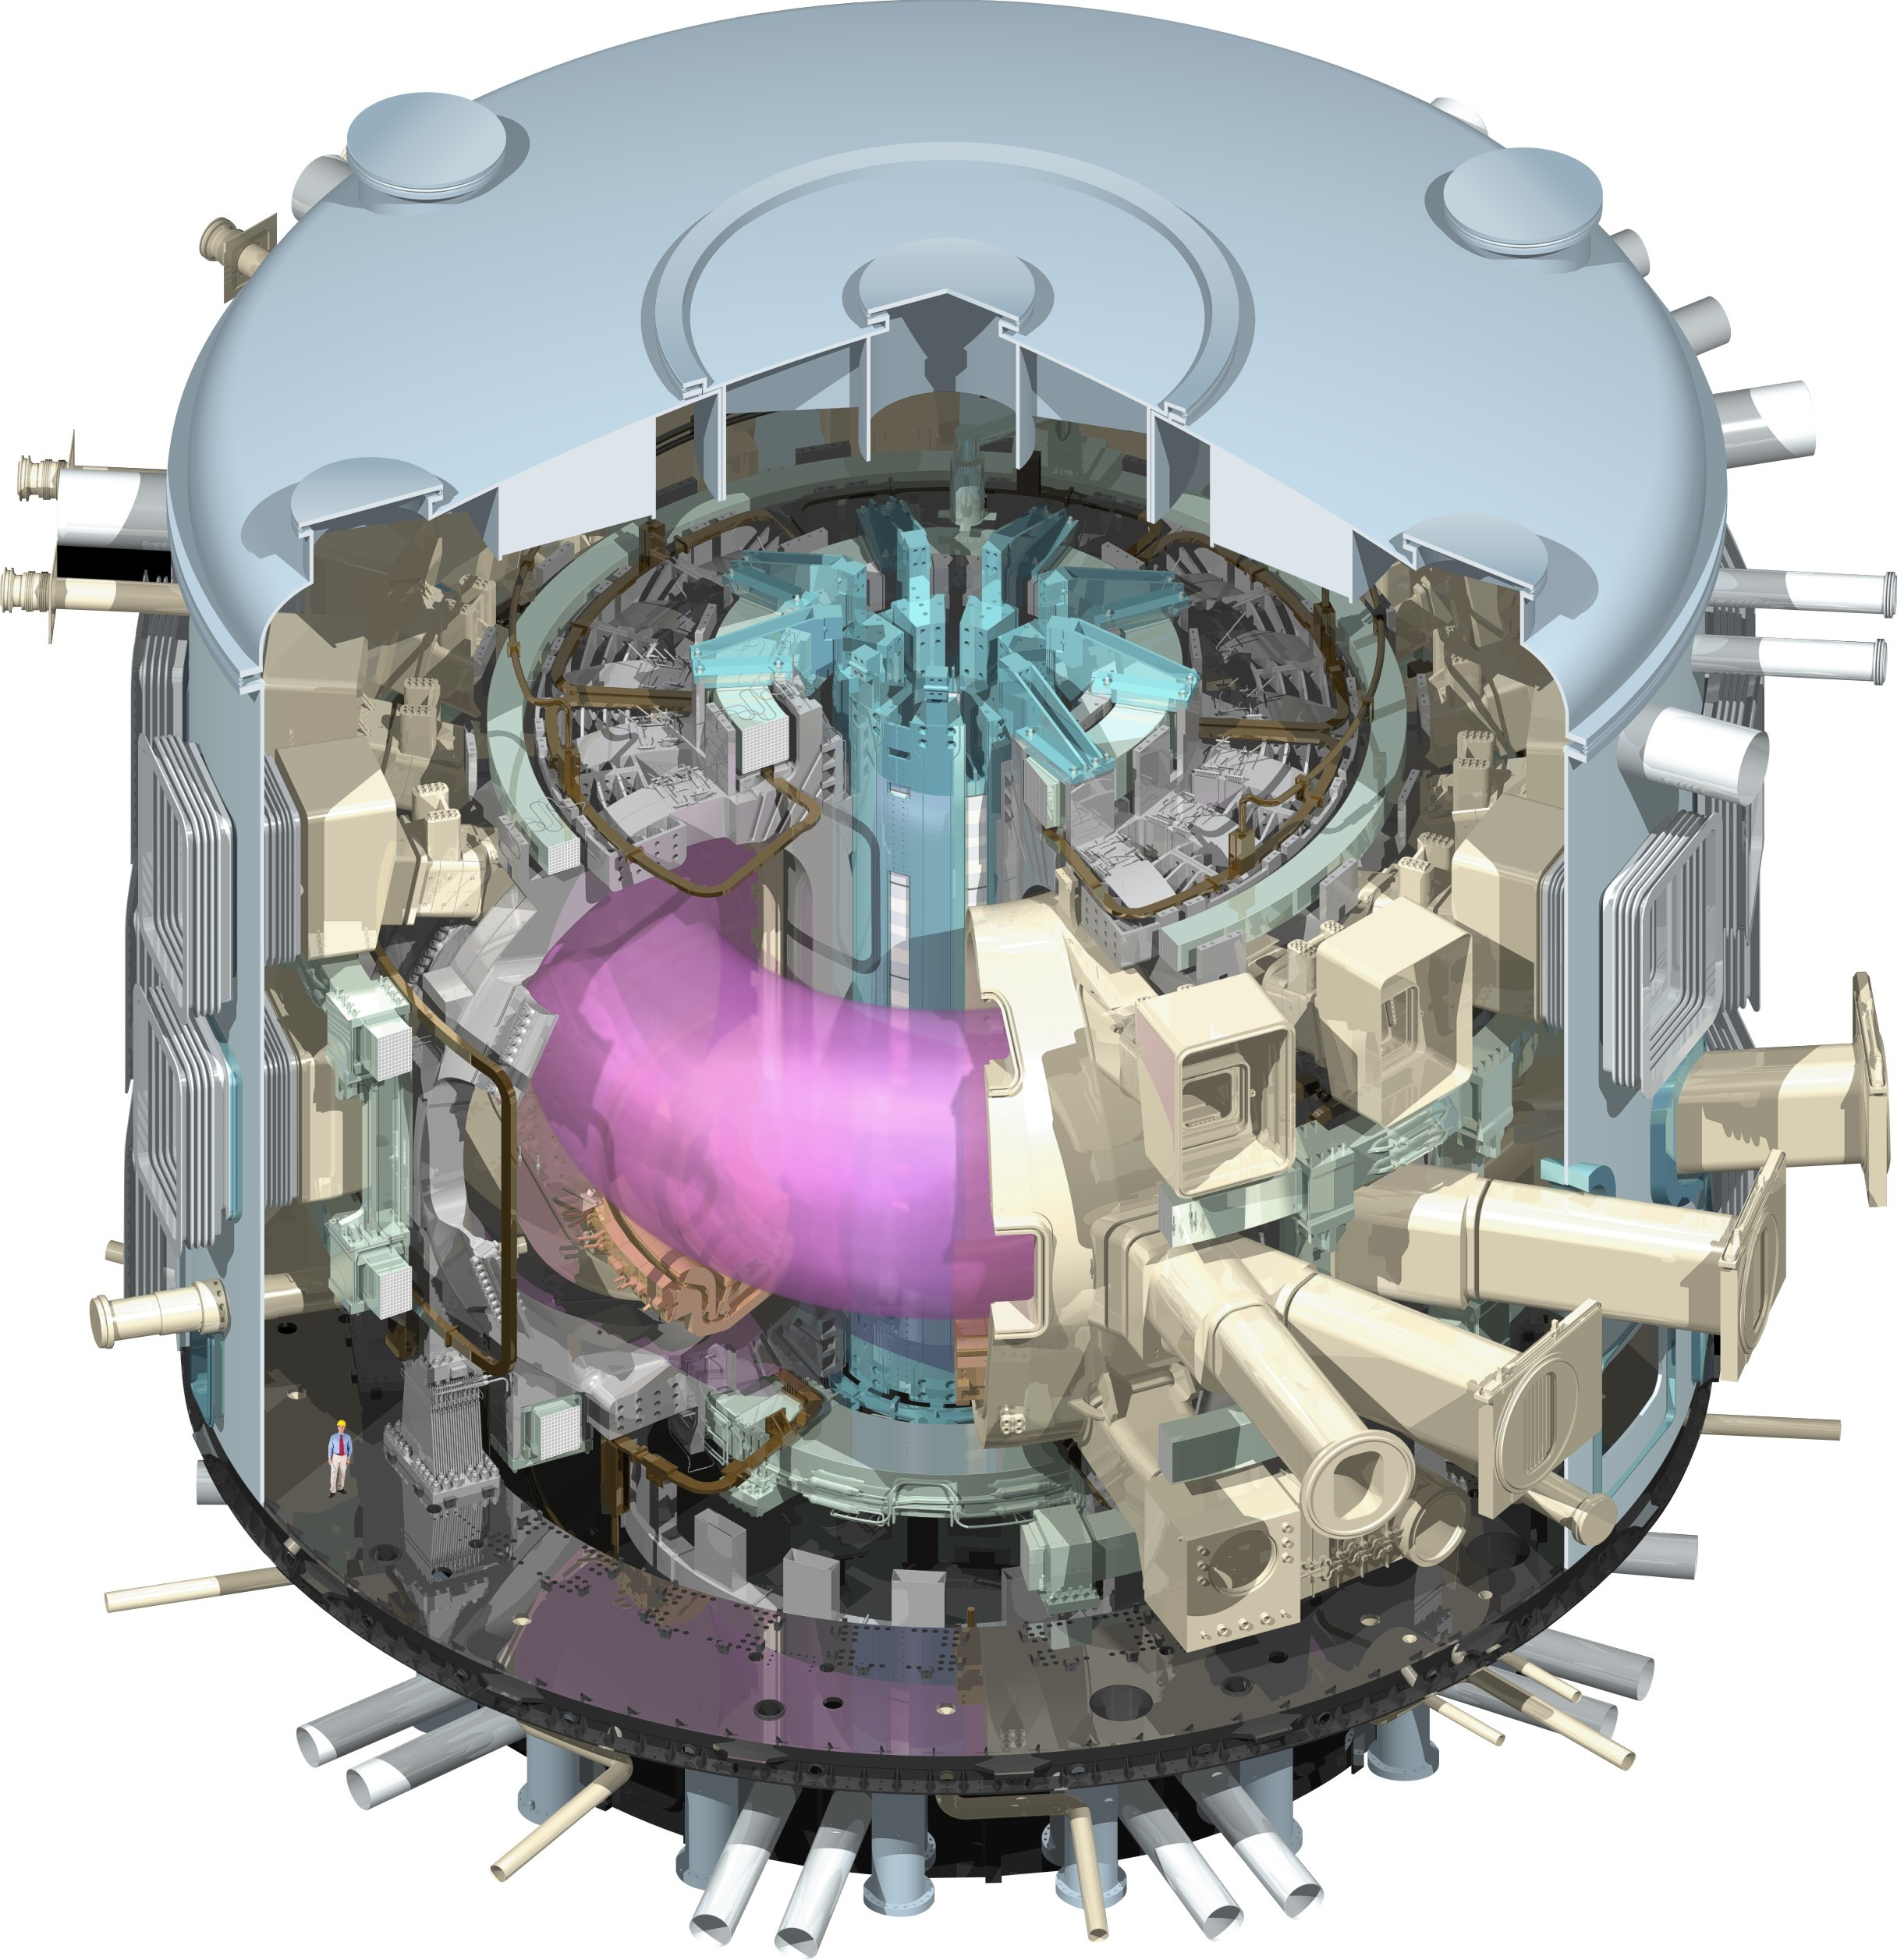 tokamak_cut_away